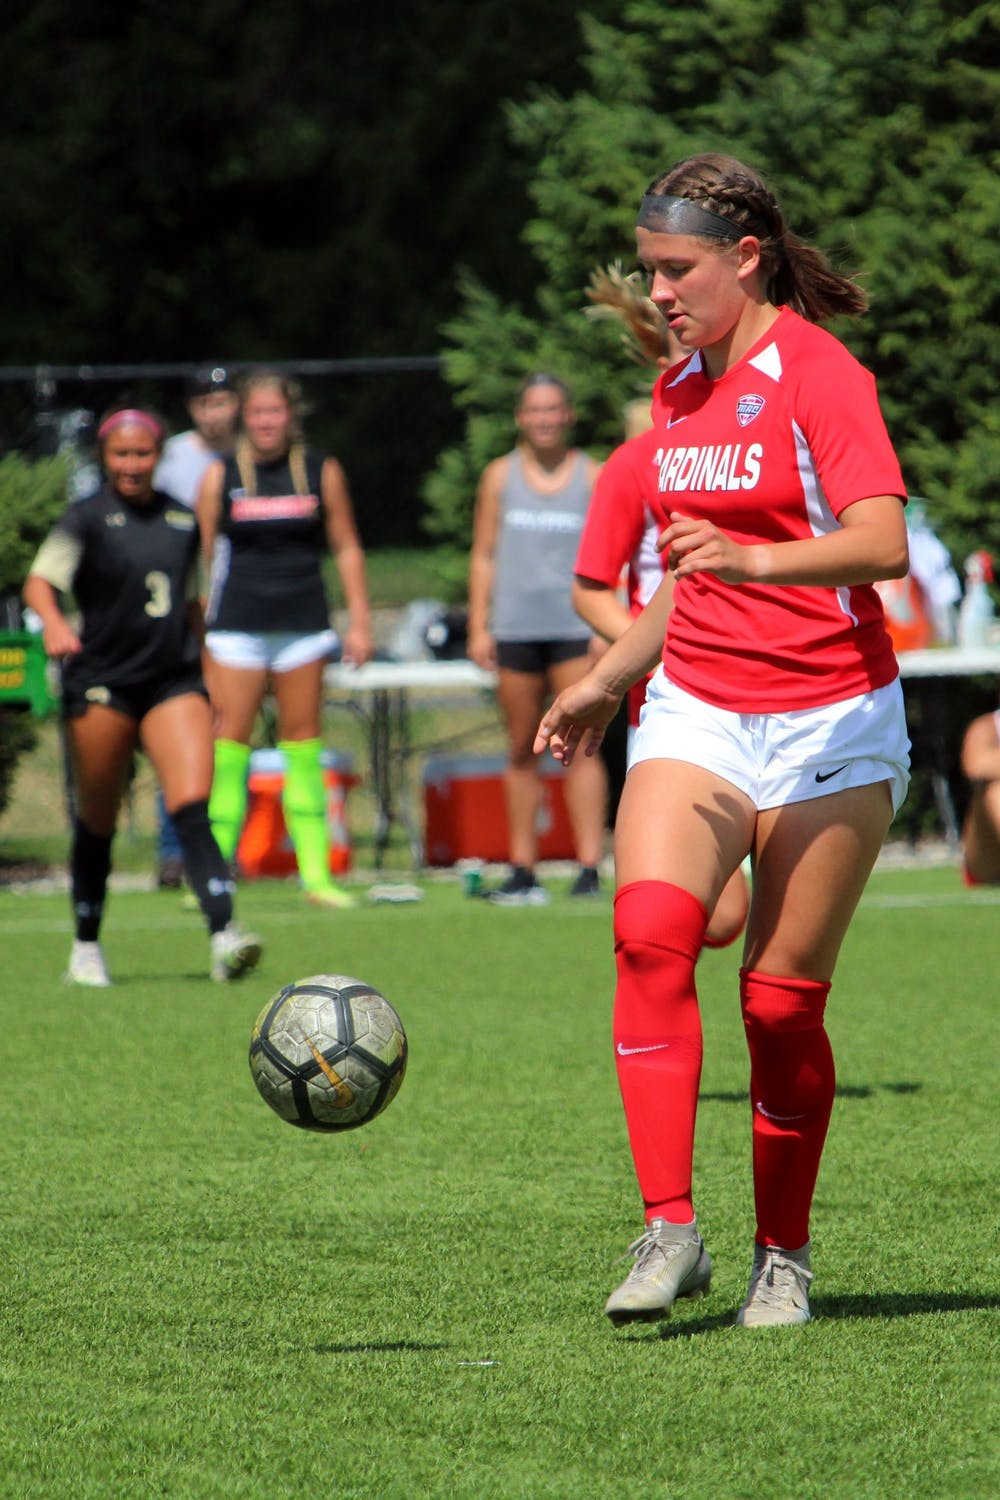 <p>A player for Ball State Soccer goes for the ball in a game against Purdue Fort Wayne, Sunday, Sept. 5, 2021.<strong> DN, Amber Pietz</strong><br/><br/><br/><br/></p>